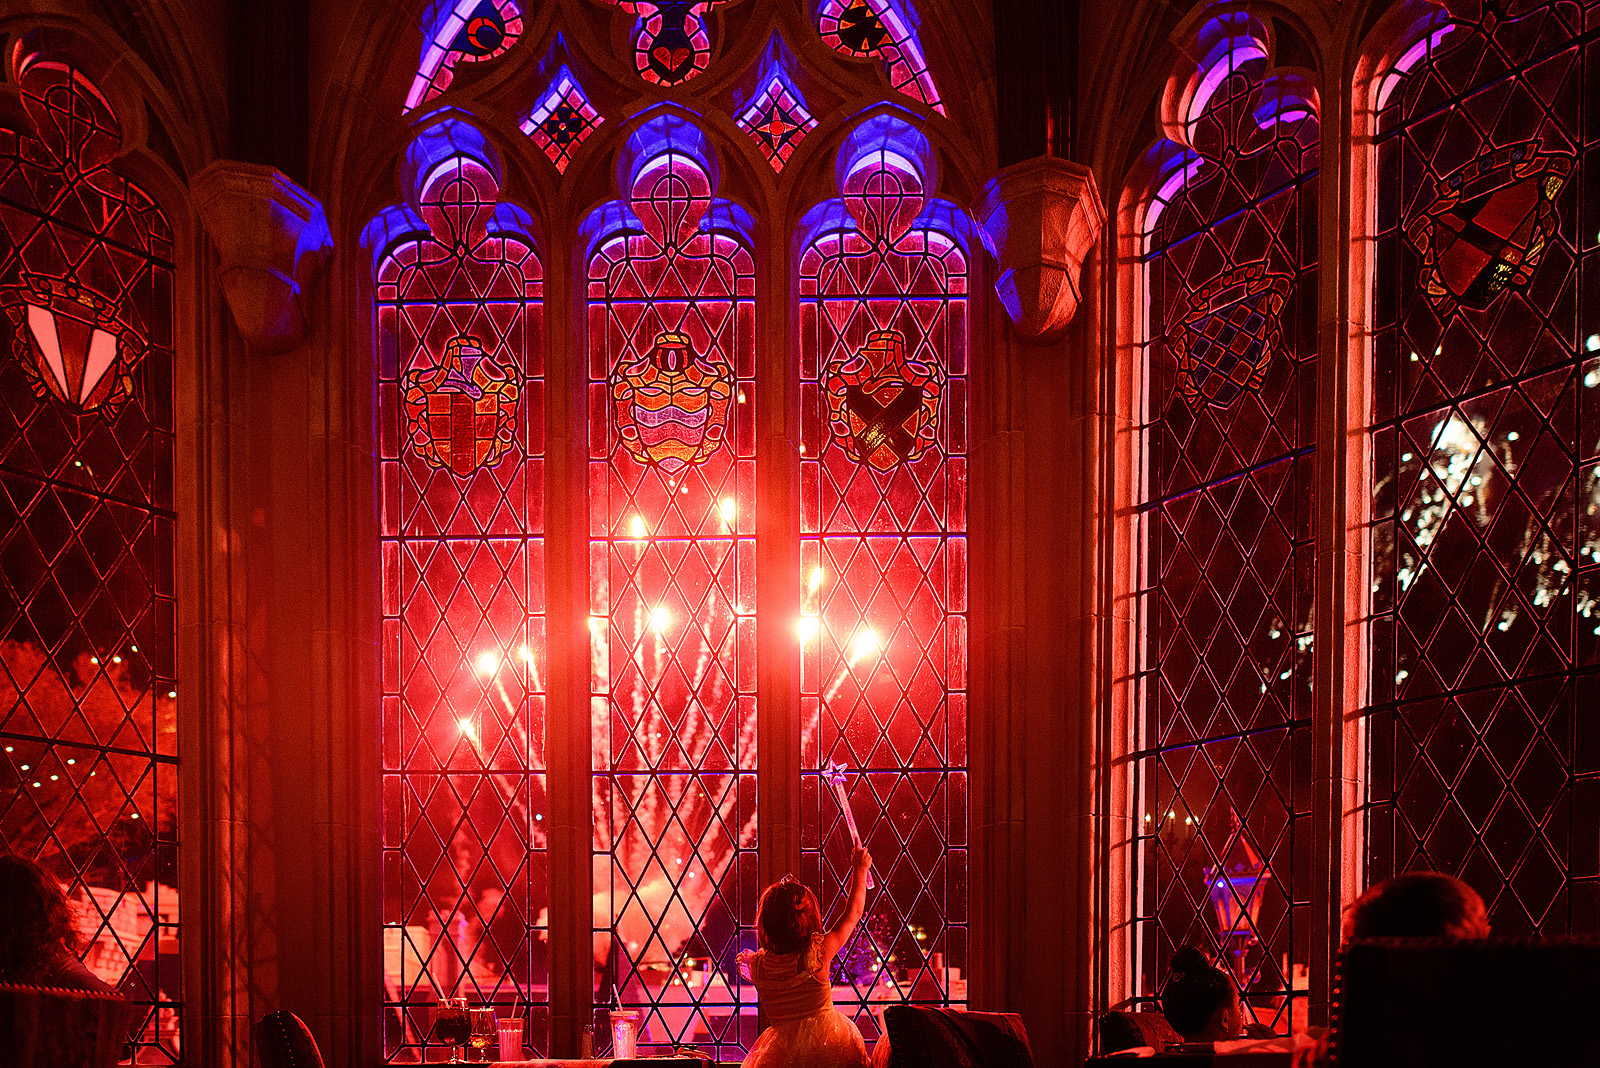 little princess watching the fireworks from inside Cinderella's castle at Magic Kingdom Disney World